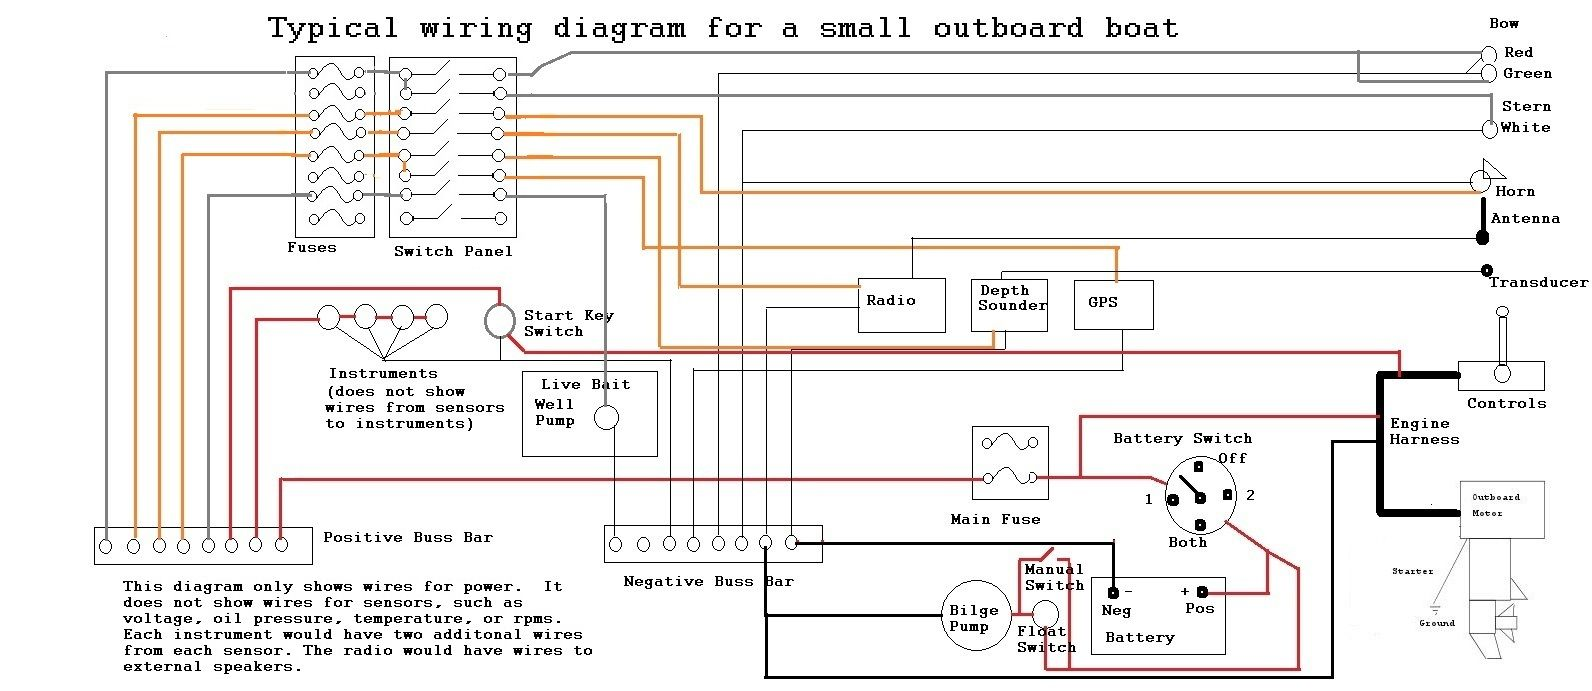 boat wiring diagram 19 general wiring diagrams Livingston Boat Wiring Diagram